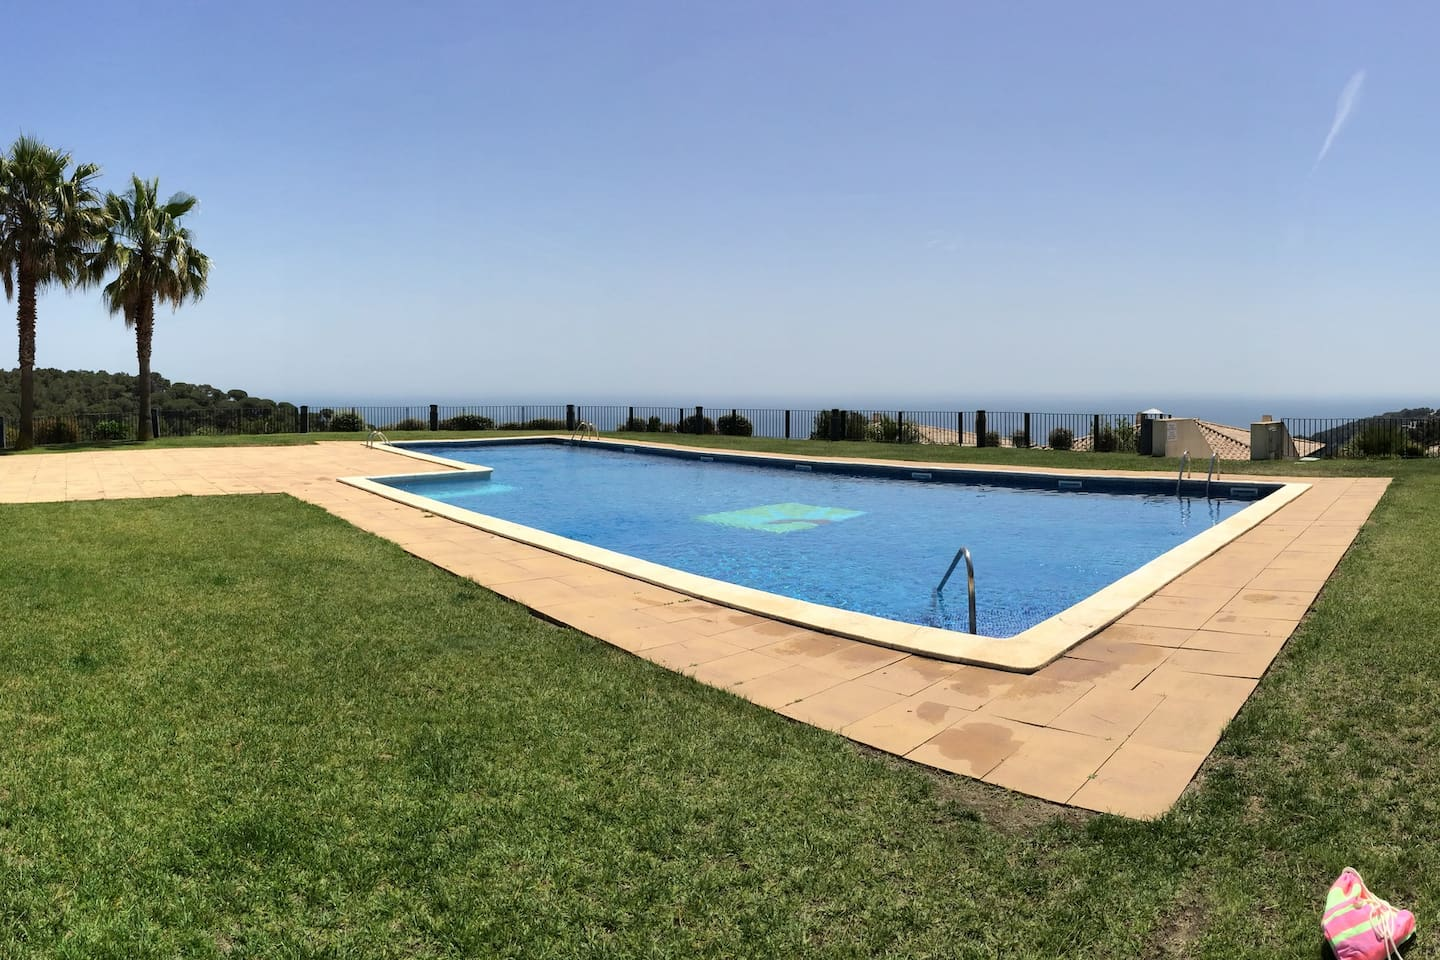 Shared swimming pool. On a hill, with spectacular views over the sea and the countryside.